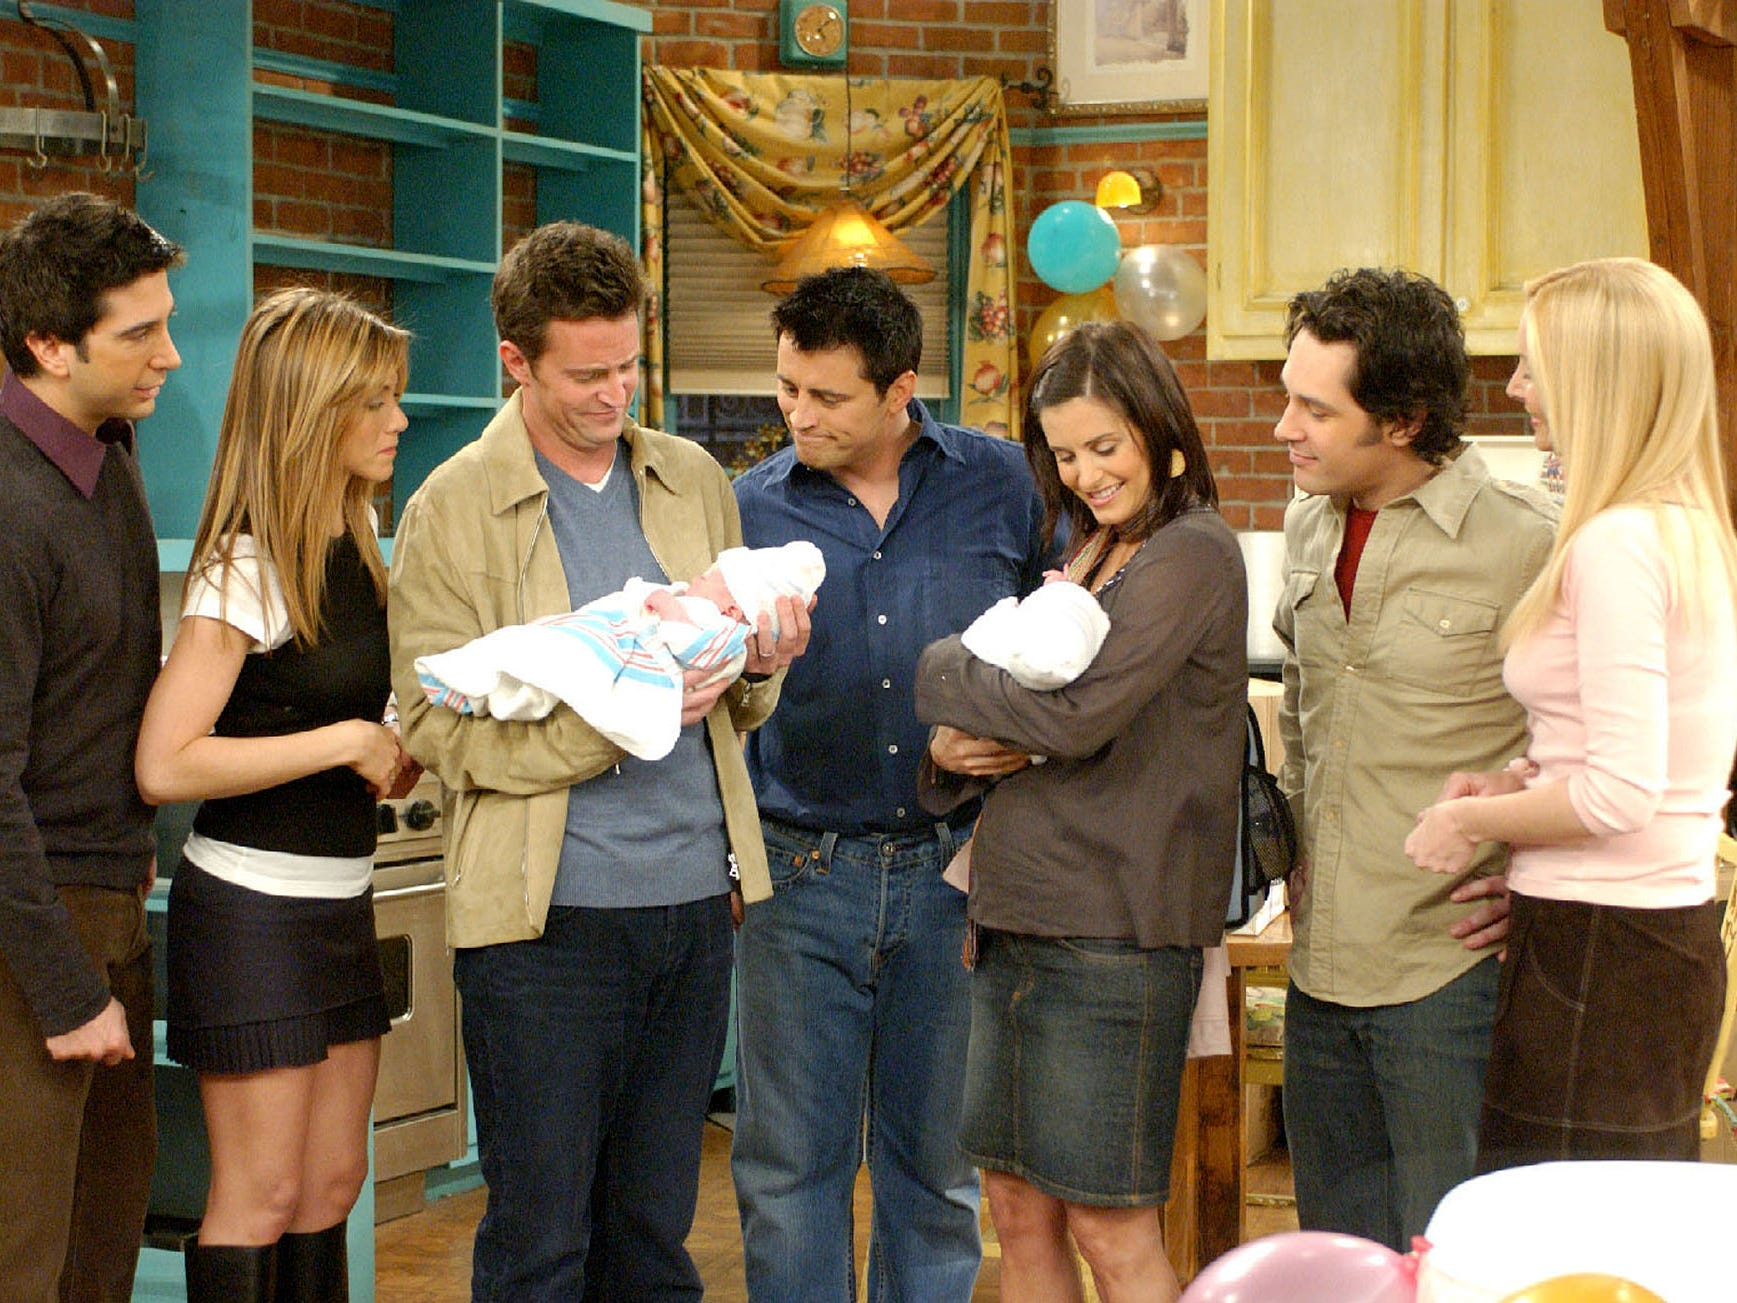 """May 2004 brought the series finale of """"Friends,"""" wrapping a 10-year run. Rachel's story arc ended with her passing on a fashion job in Paris to remain in New York with Ross, or as Phoebe once deemed him, """"her lobster."""""""